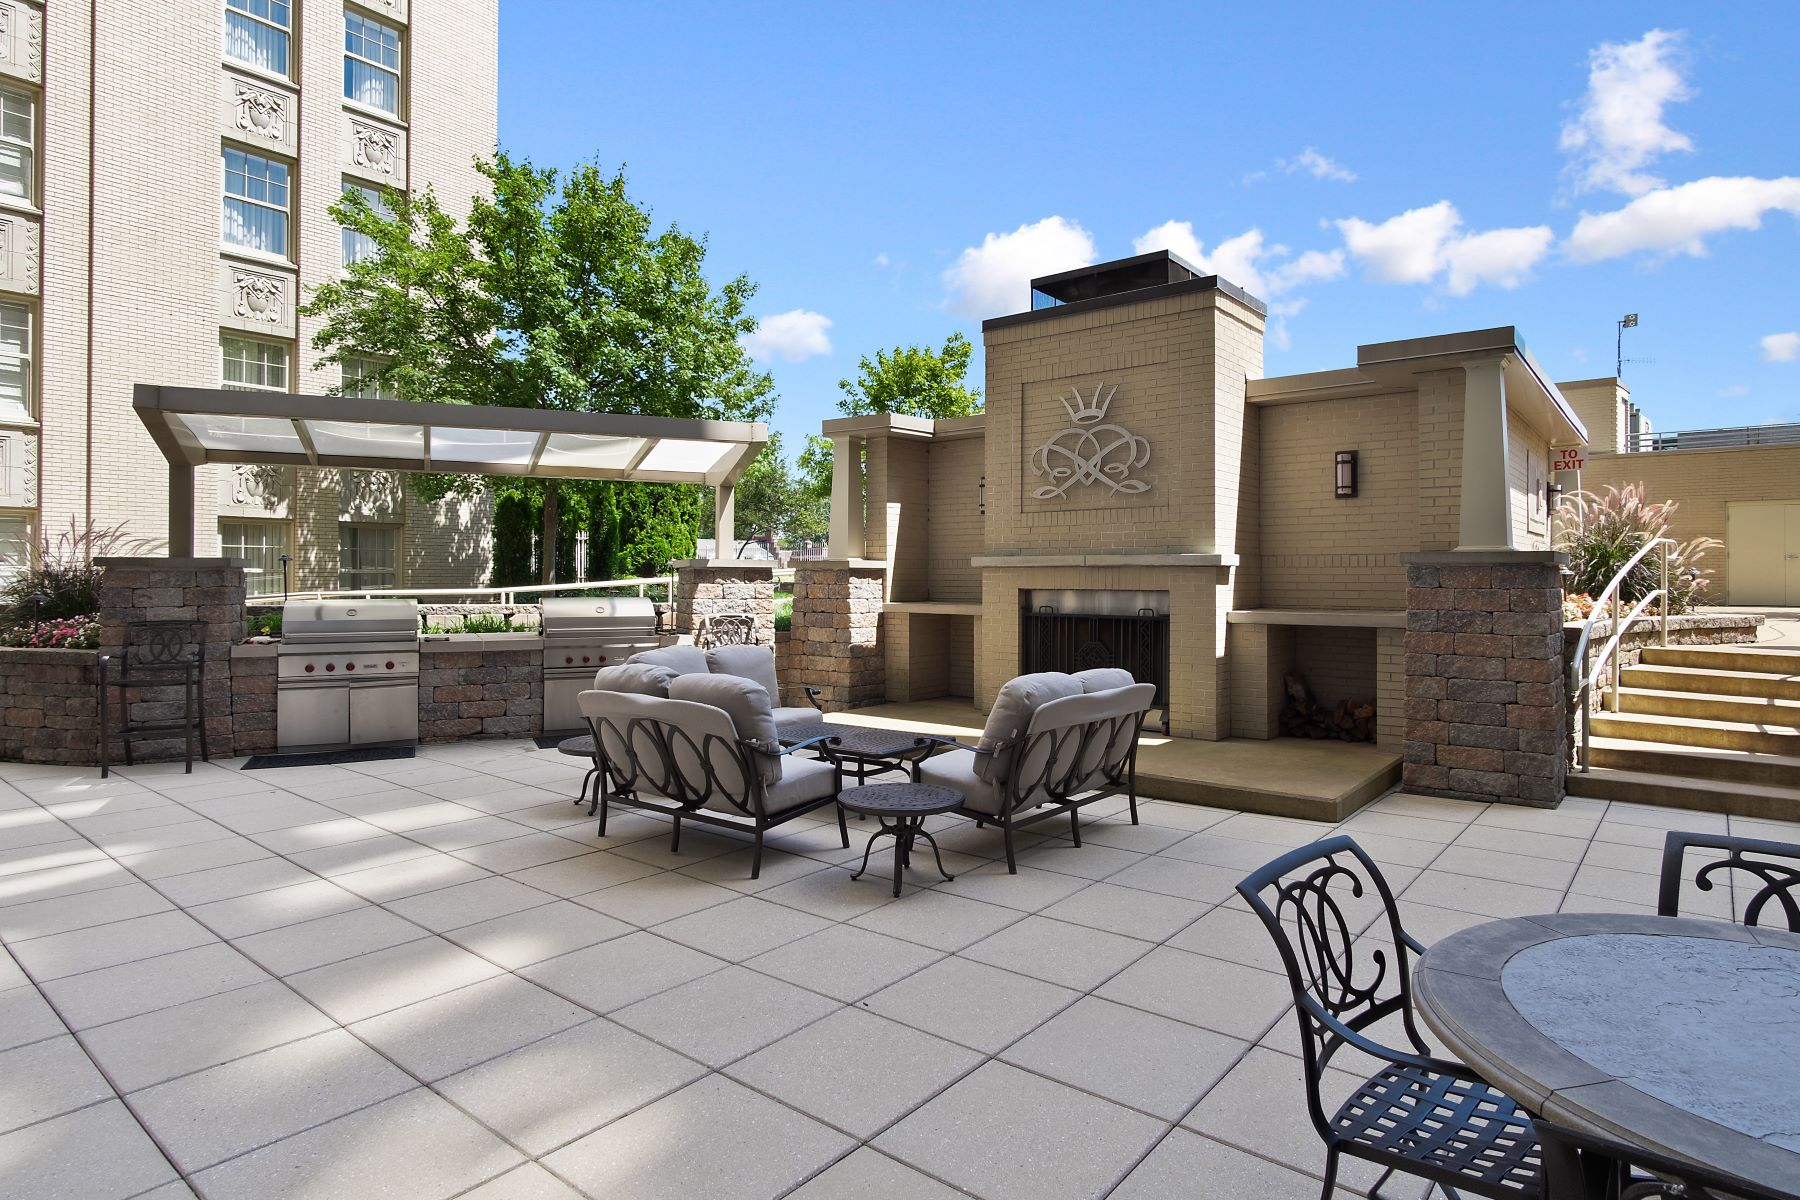 Additional photo for property listing at Extraordinary Living at The Chase 232 North Kingshighway Boulevard, #2301 St. Louis, Missouri 63108 United States